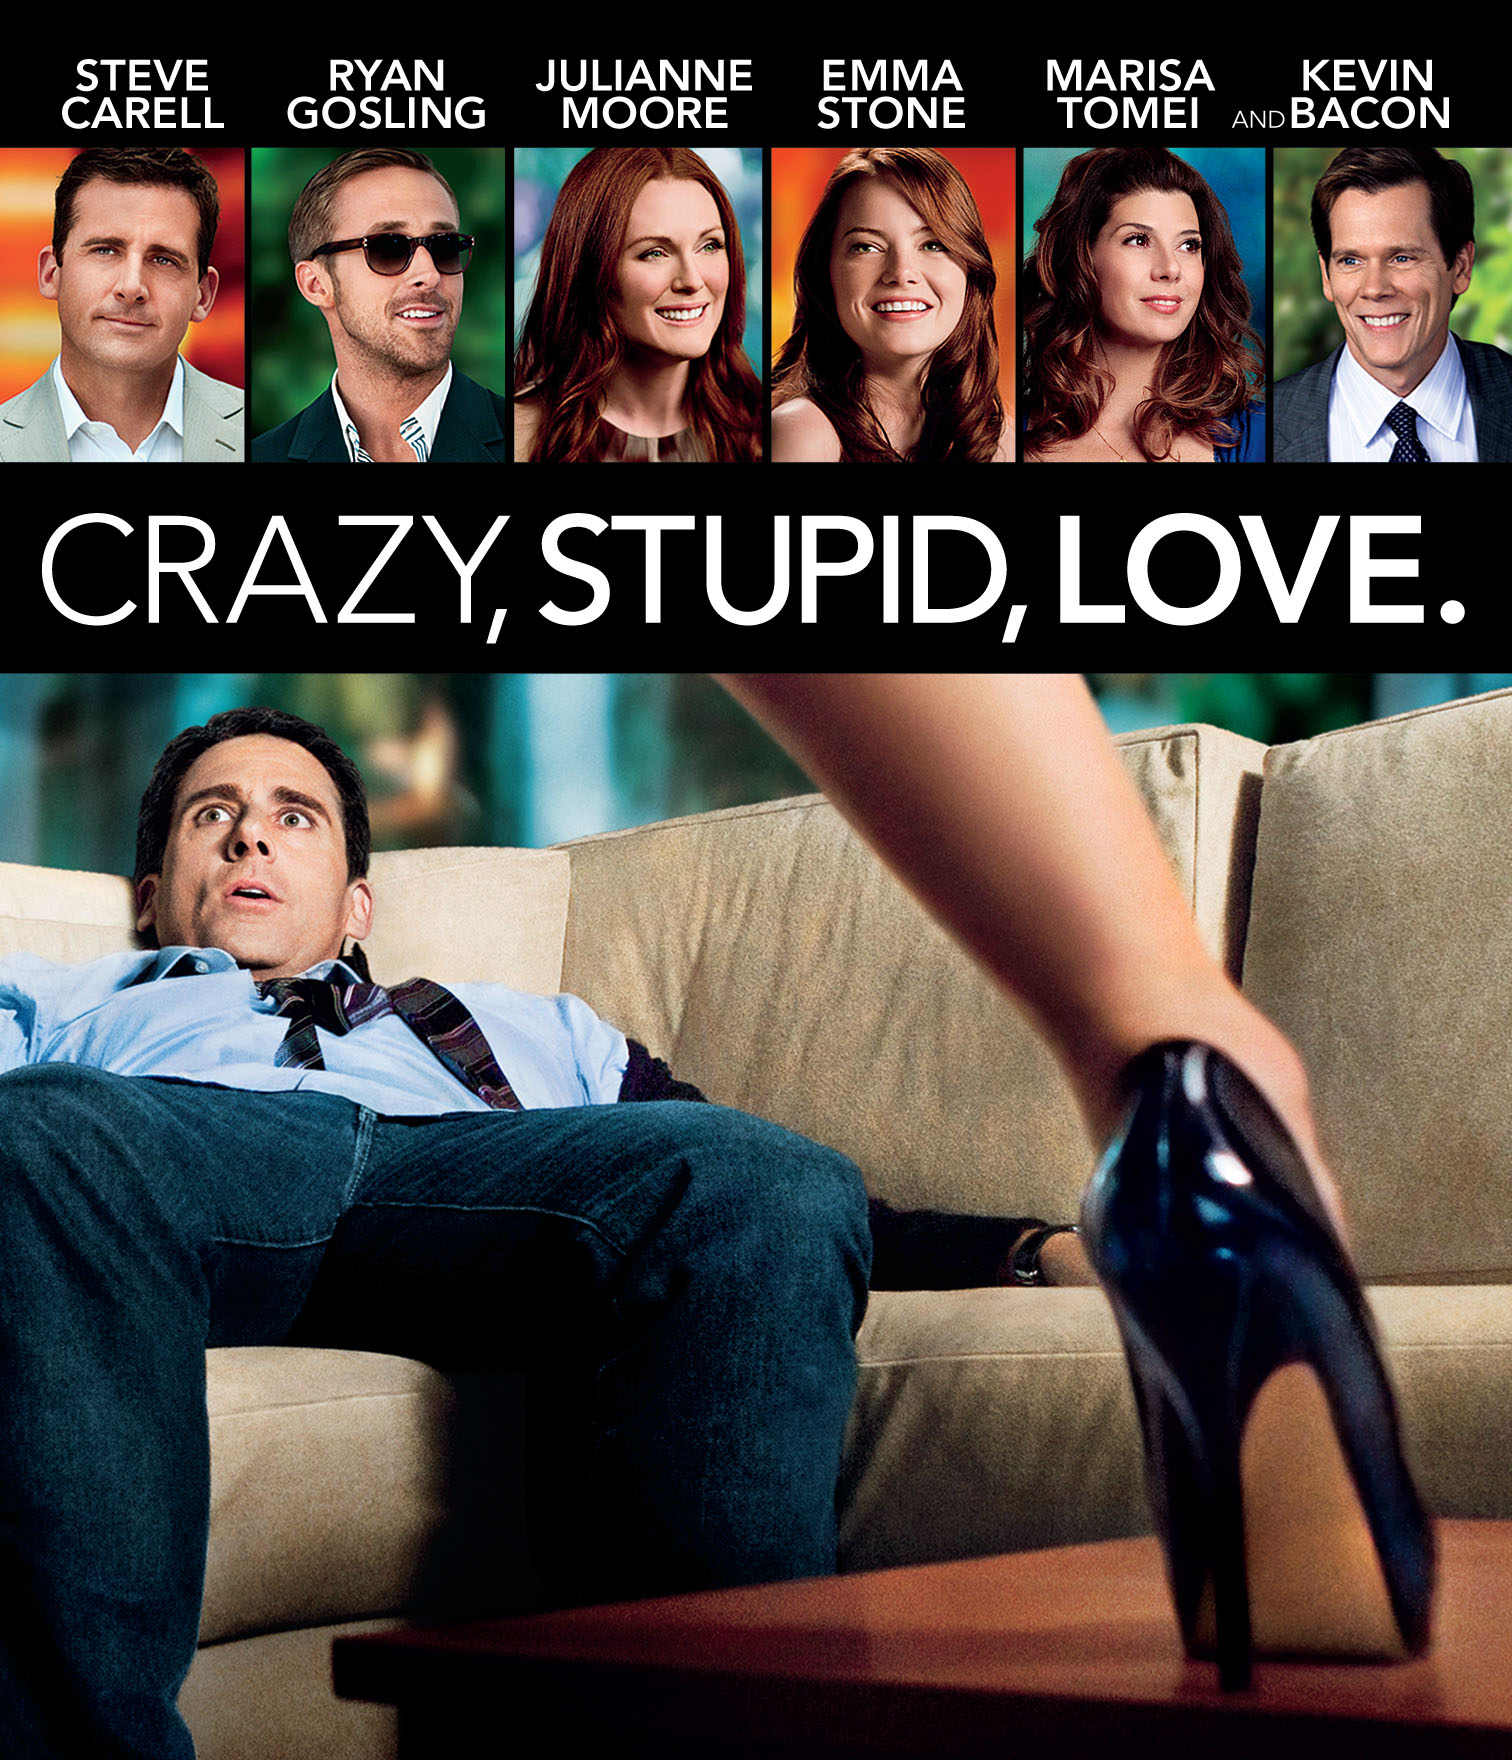 CRAZY STUPID LOVE_COMBO BD (1000250398).indd